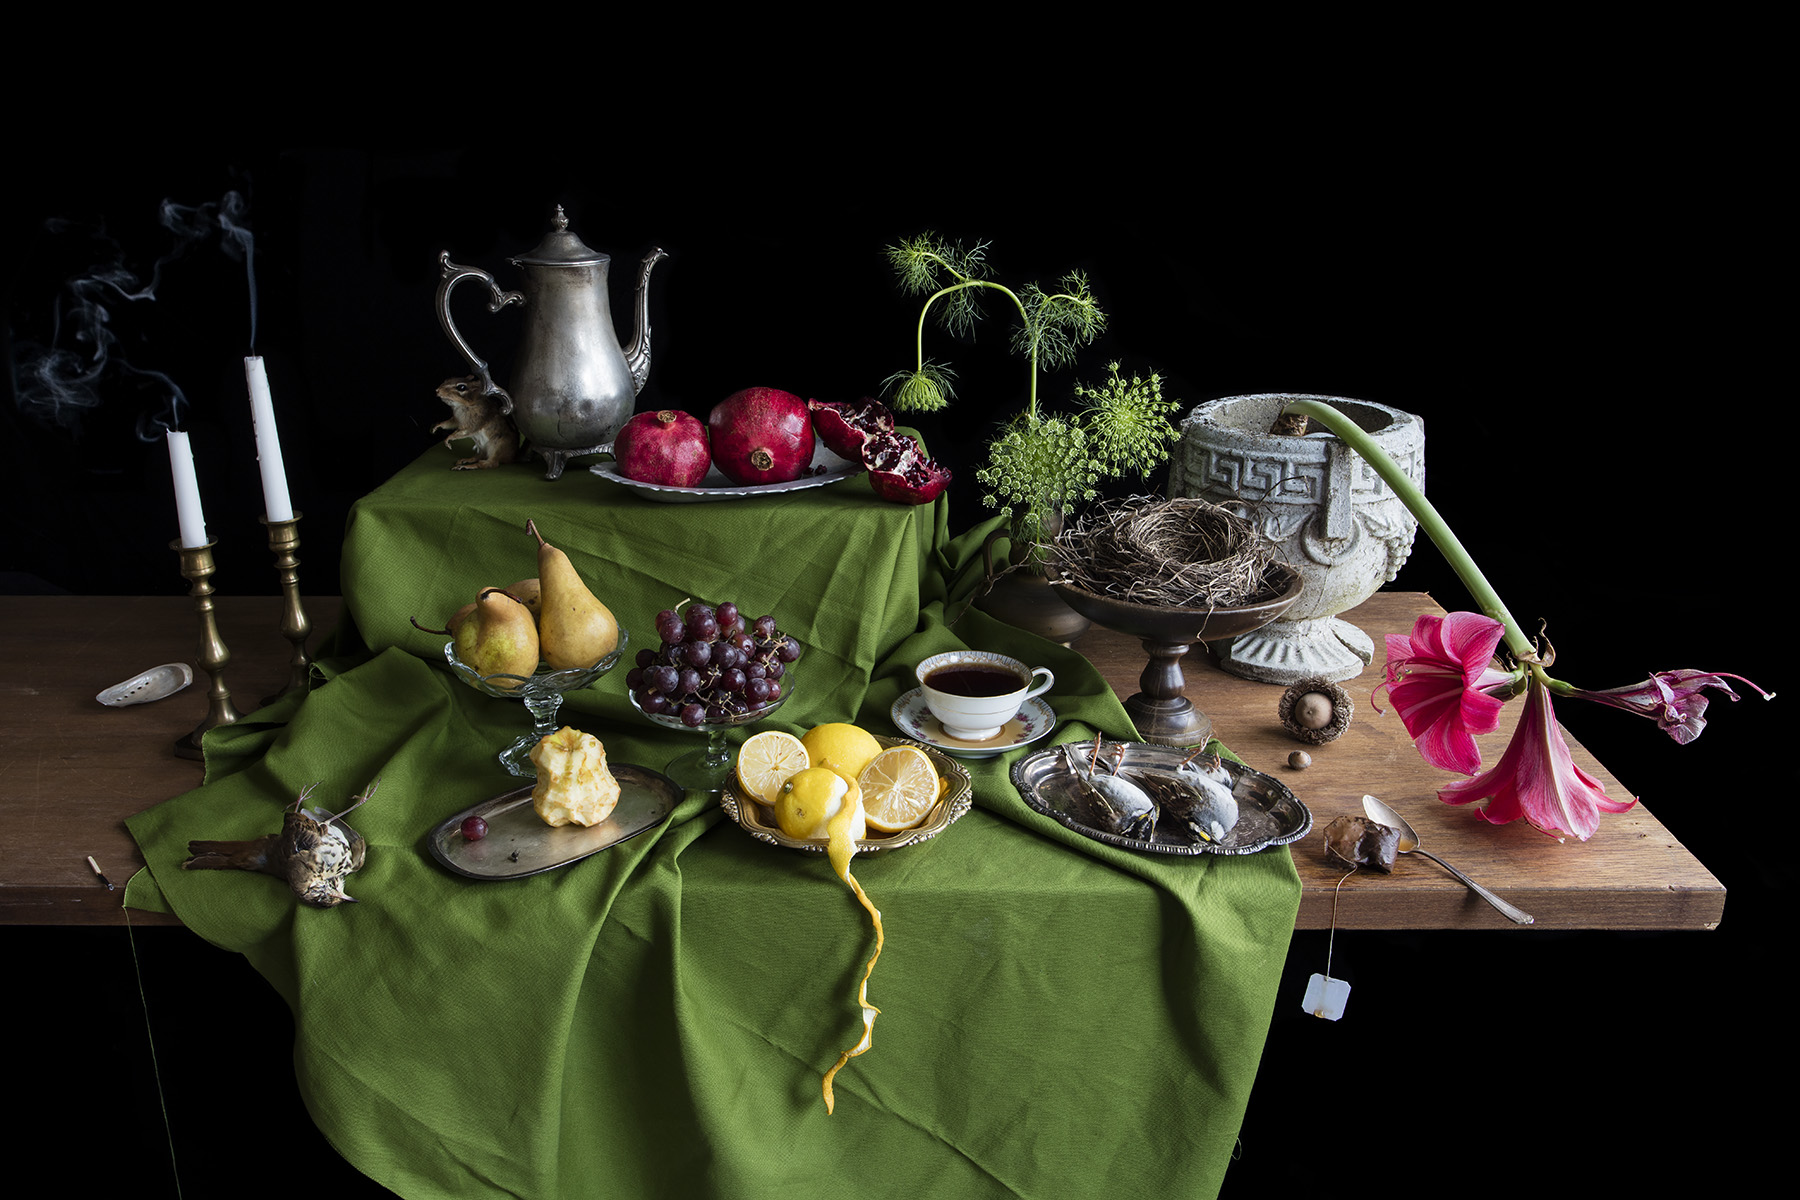 Still Life photograph by Kimberly Witham.